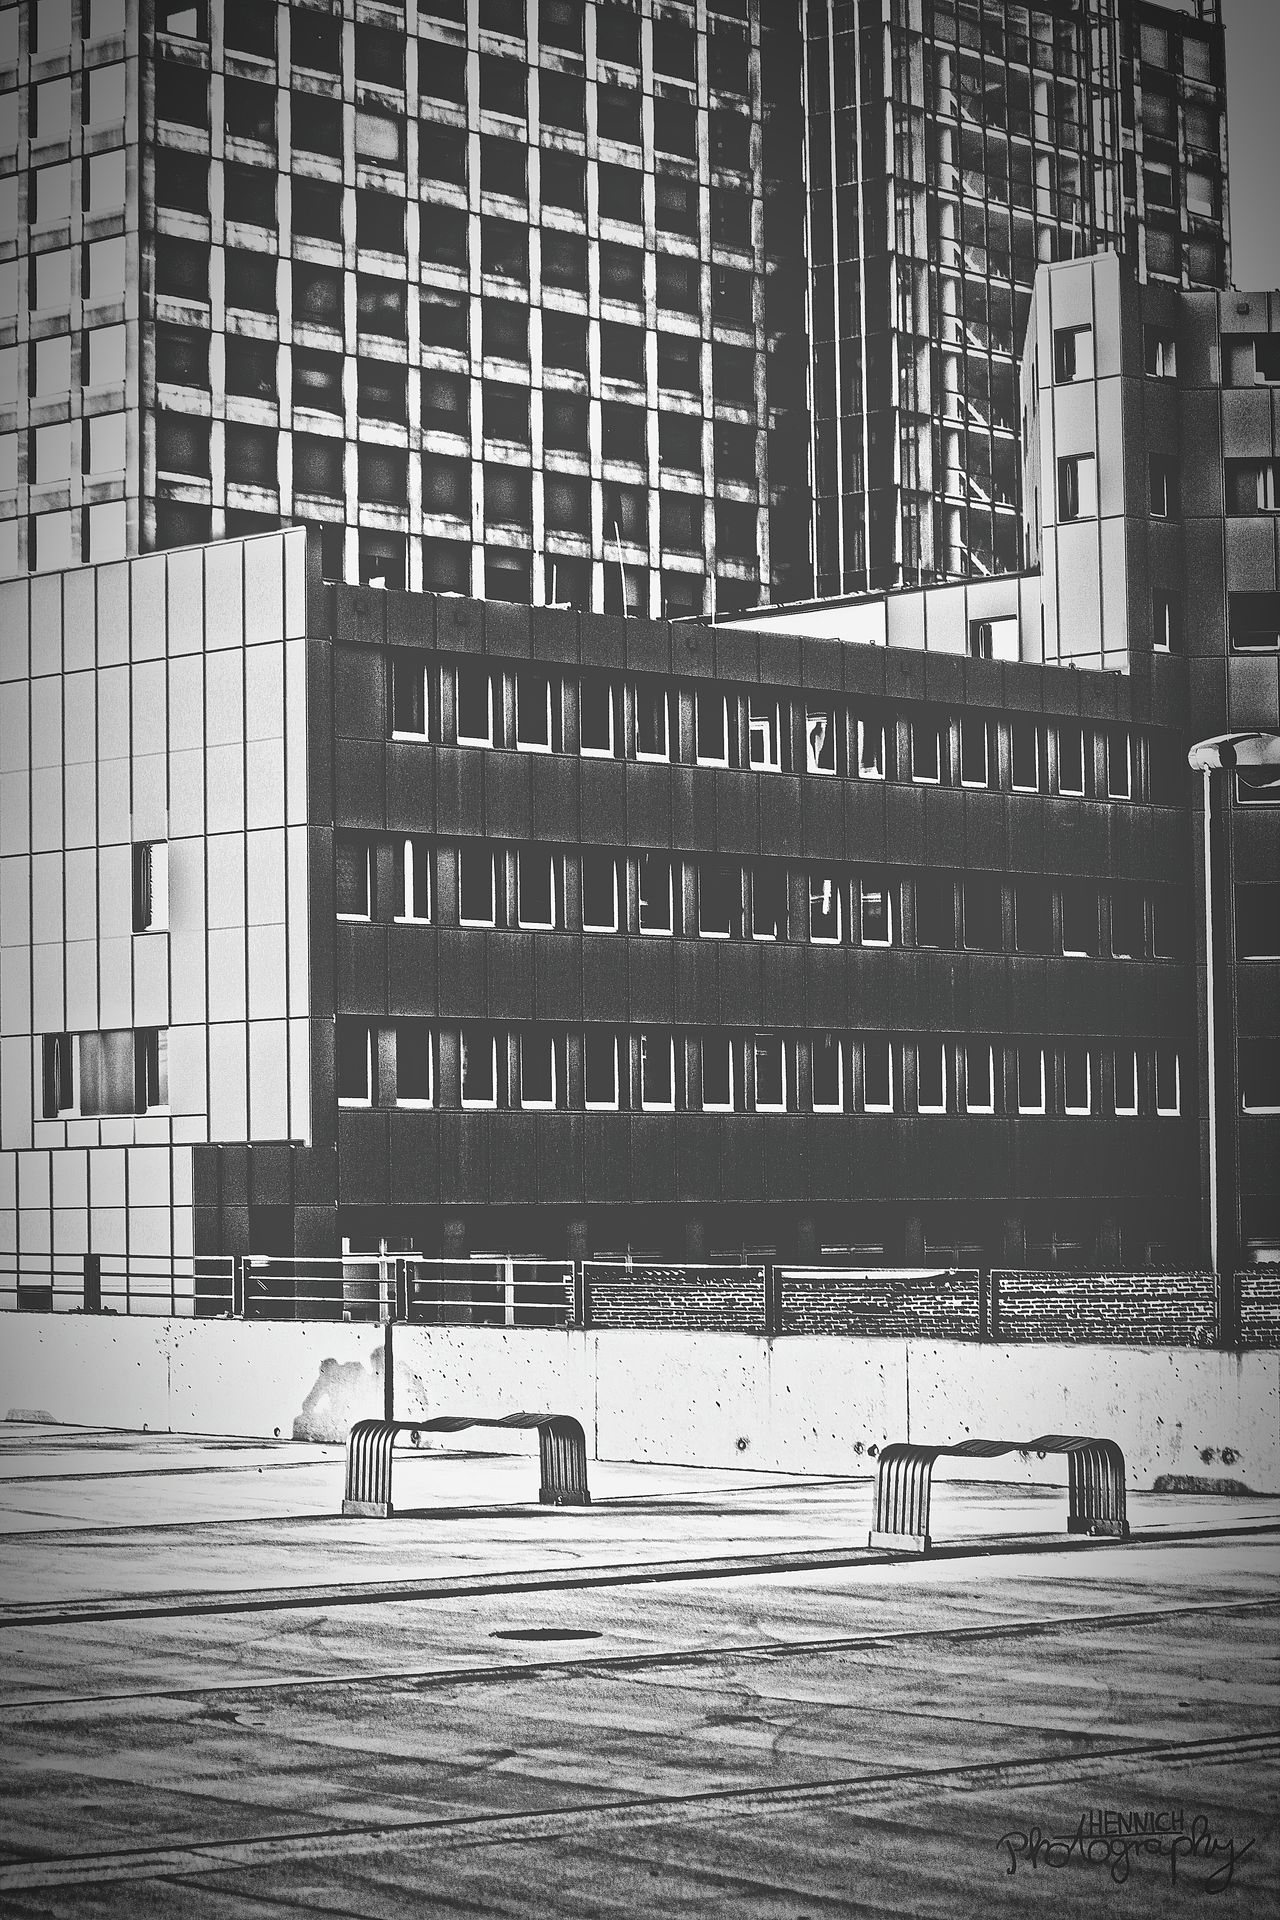 Enjoying Life Taking Photos Quality Times Architecture Architecture_bw Cityscapes City Life Hello World Blackandwhite